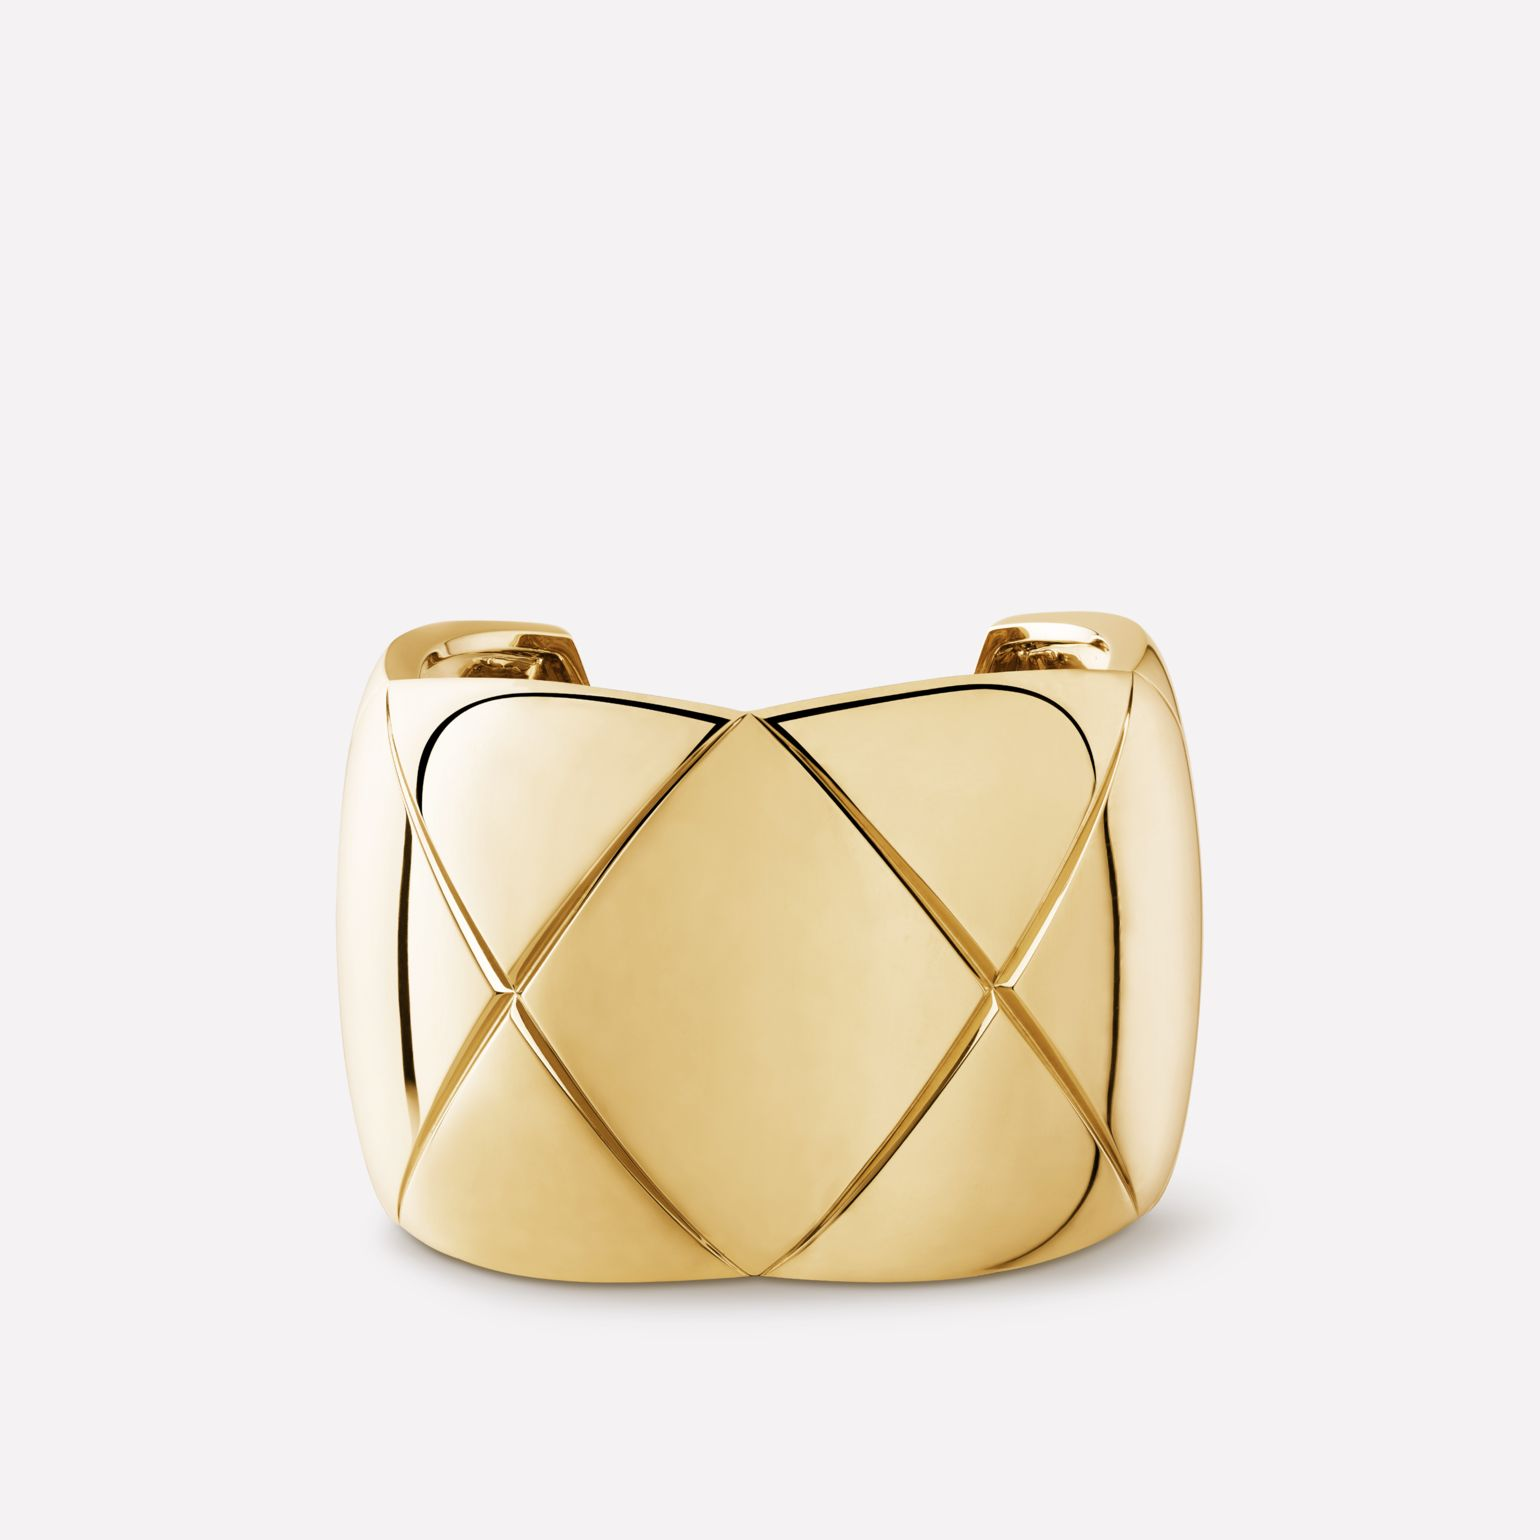 Coco Crush Bracelet Coco Crush quilted cuff in 18K yellow gold